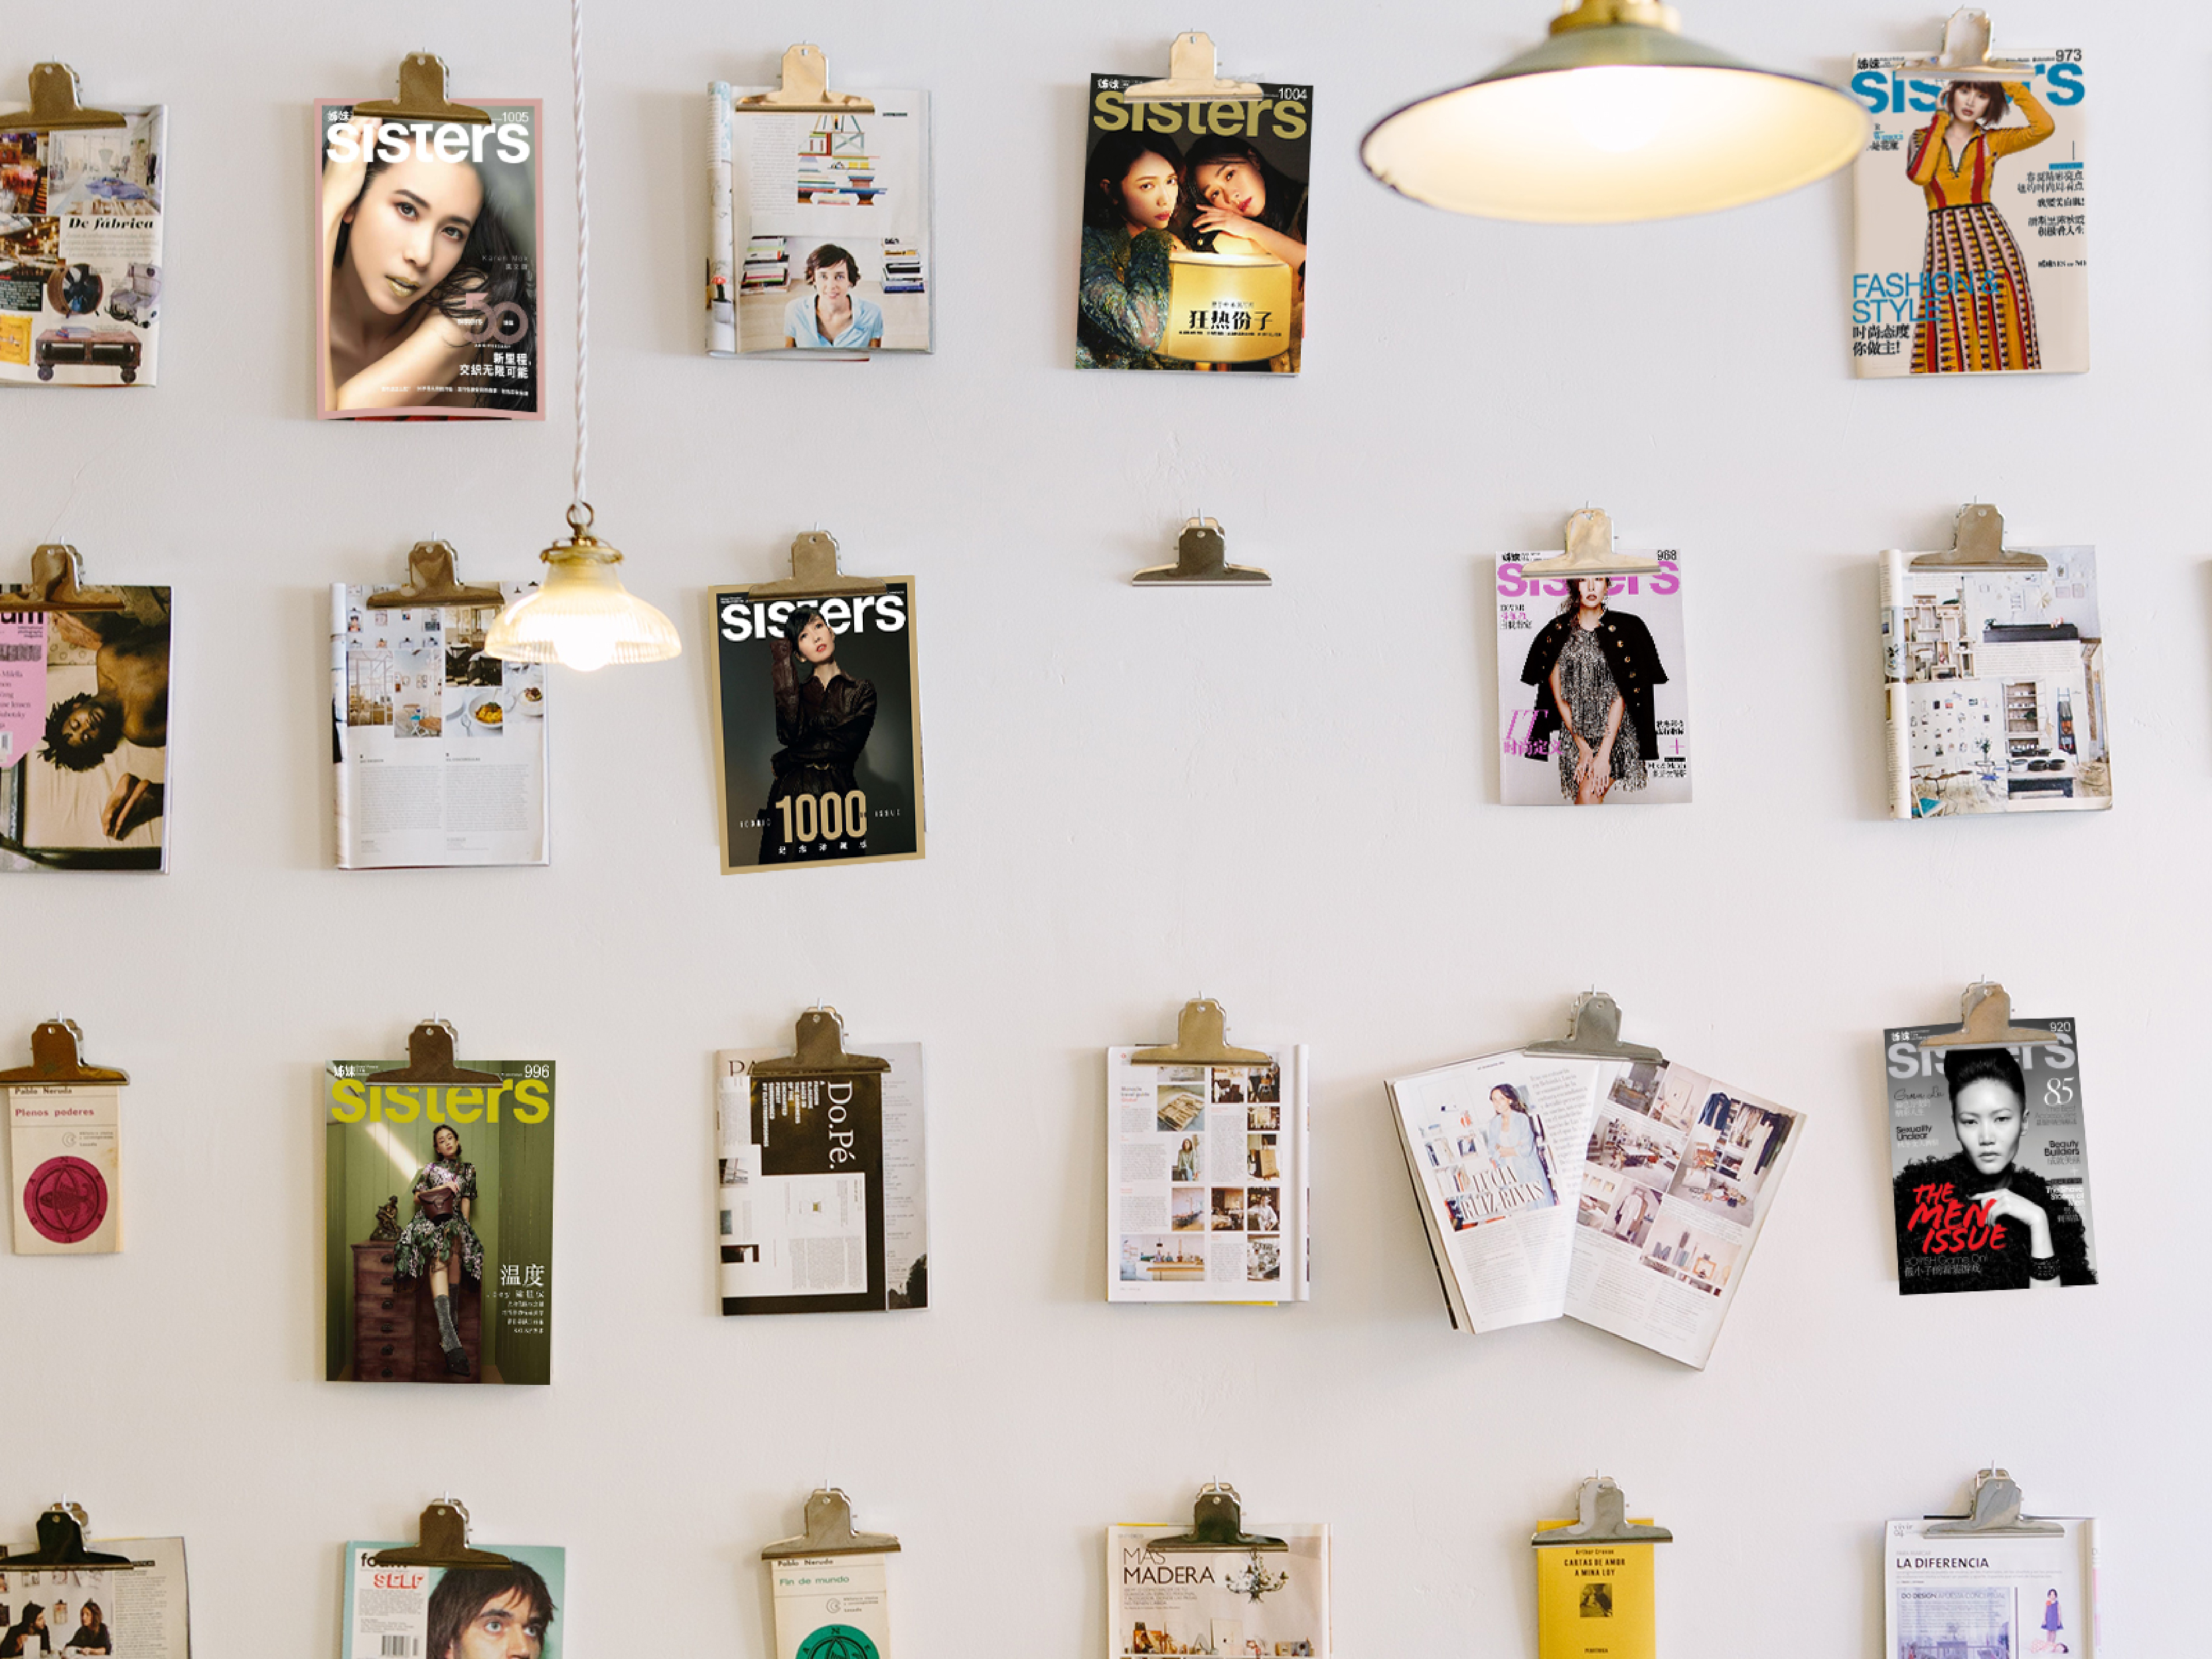 Sisters Magazine issues all hung up against a white wall in commemoration of their 1000th issue